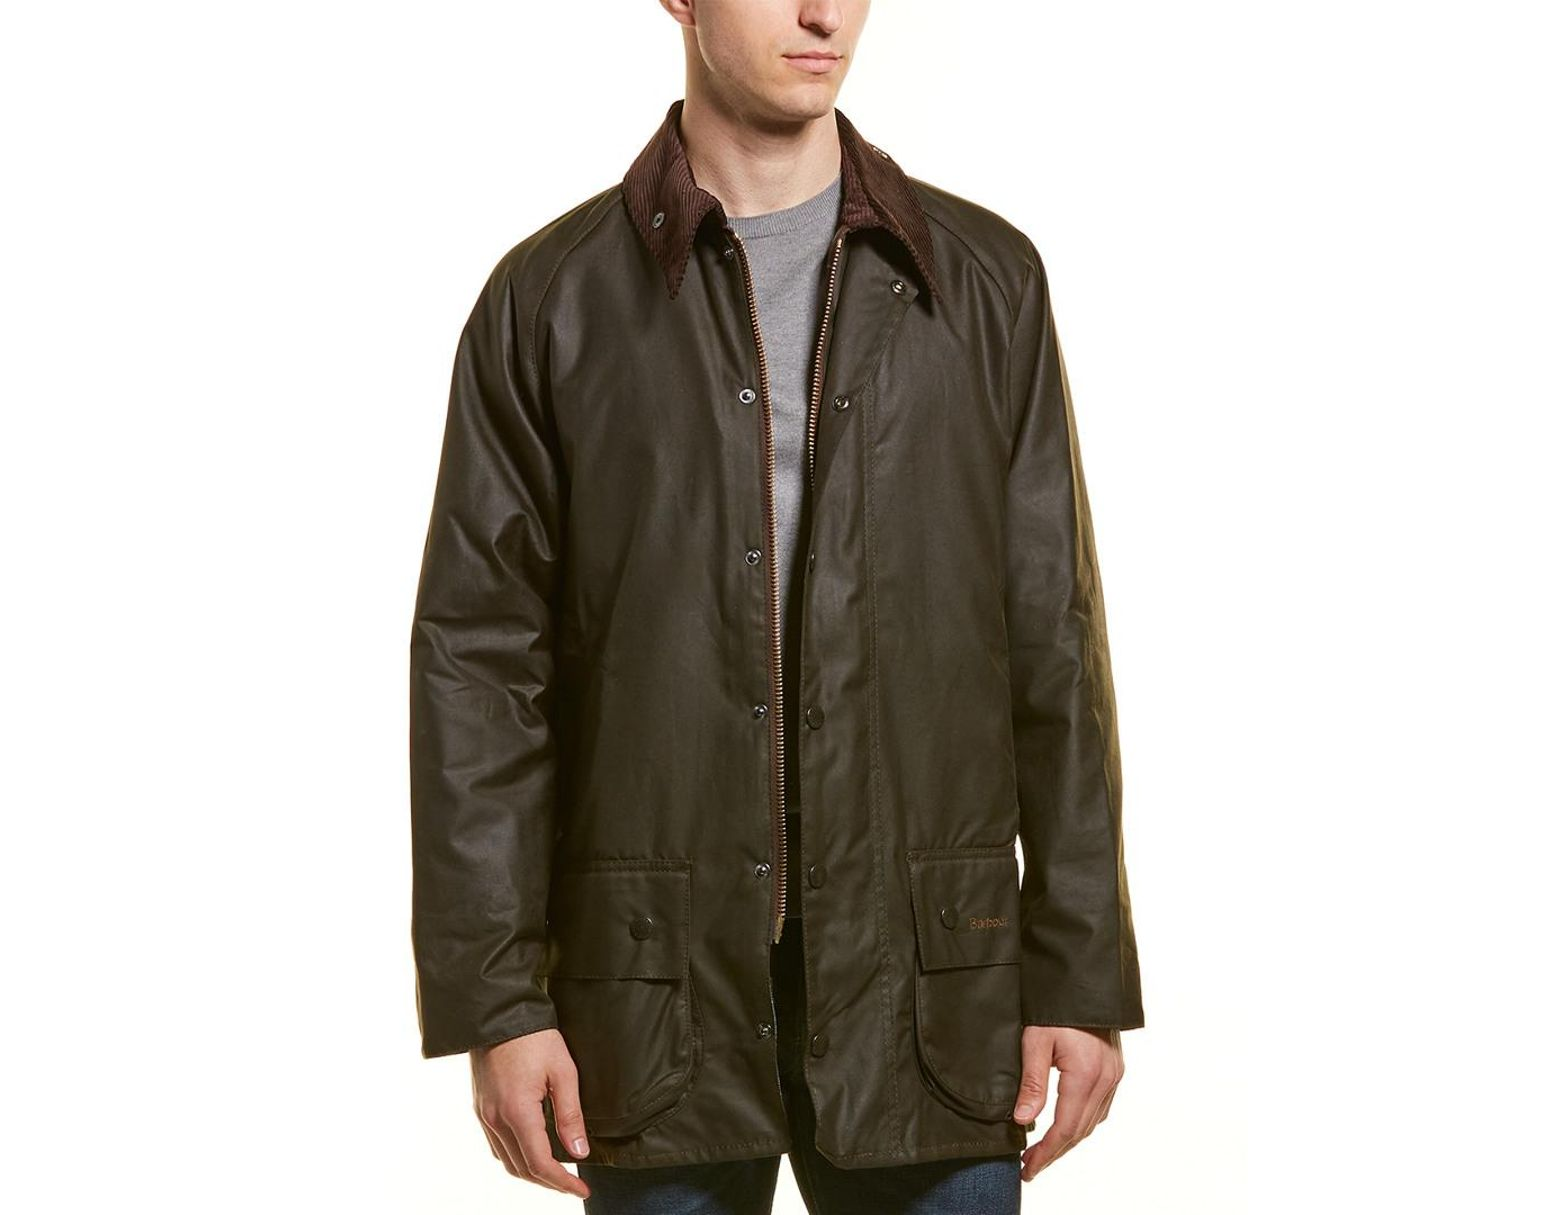 ed6a7033f36d Barbour Classic Beaufort Wax Jacket in Green for Men - Lyst